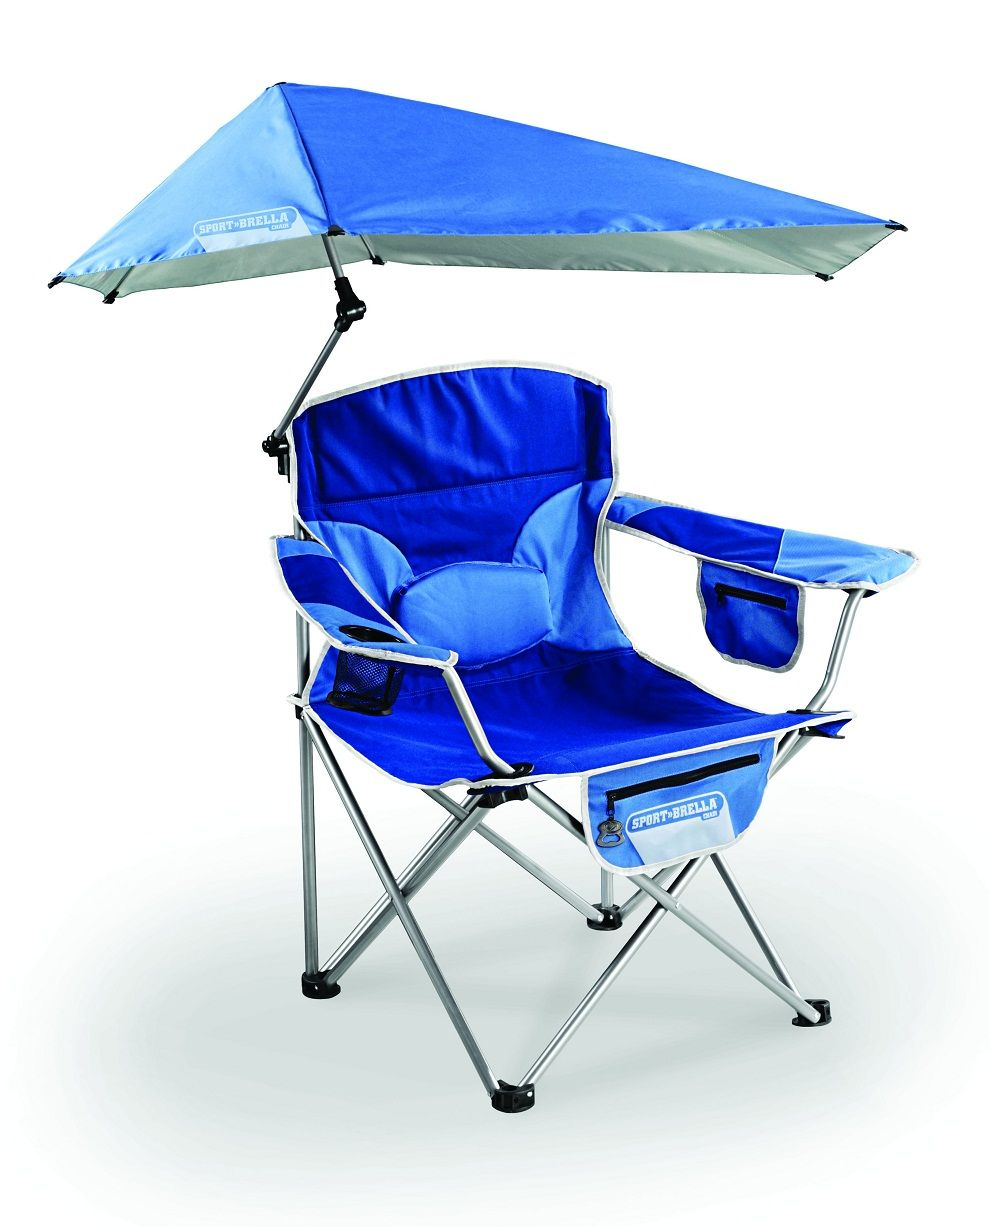 Beach Chairs With Umbrella Modern Beach Chair With Umbrella Attached Beach Theme Camping